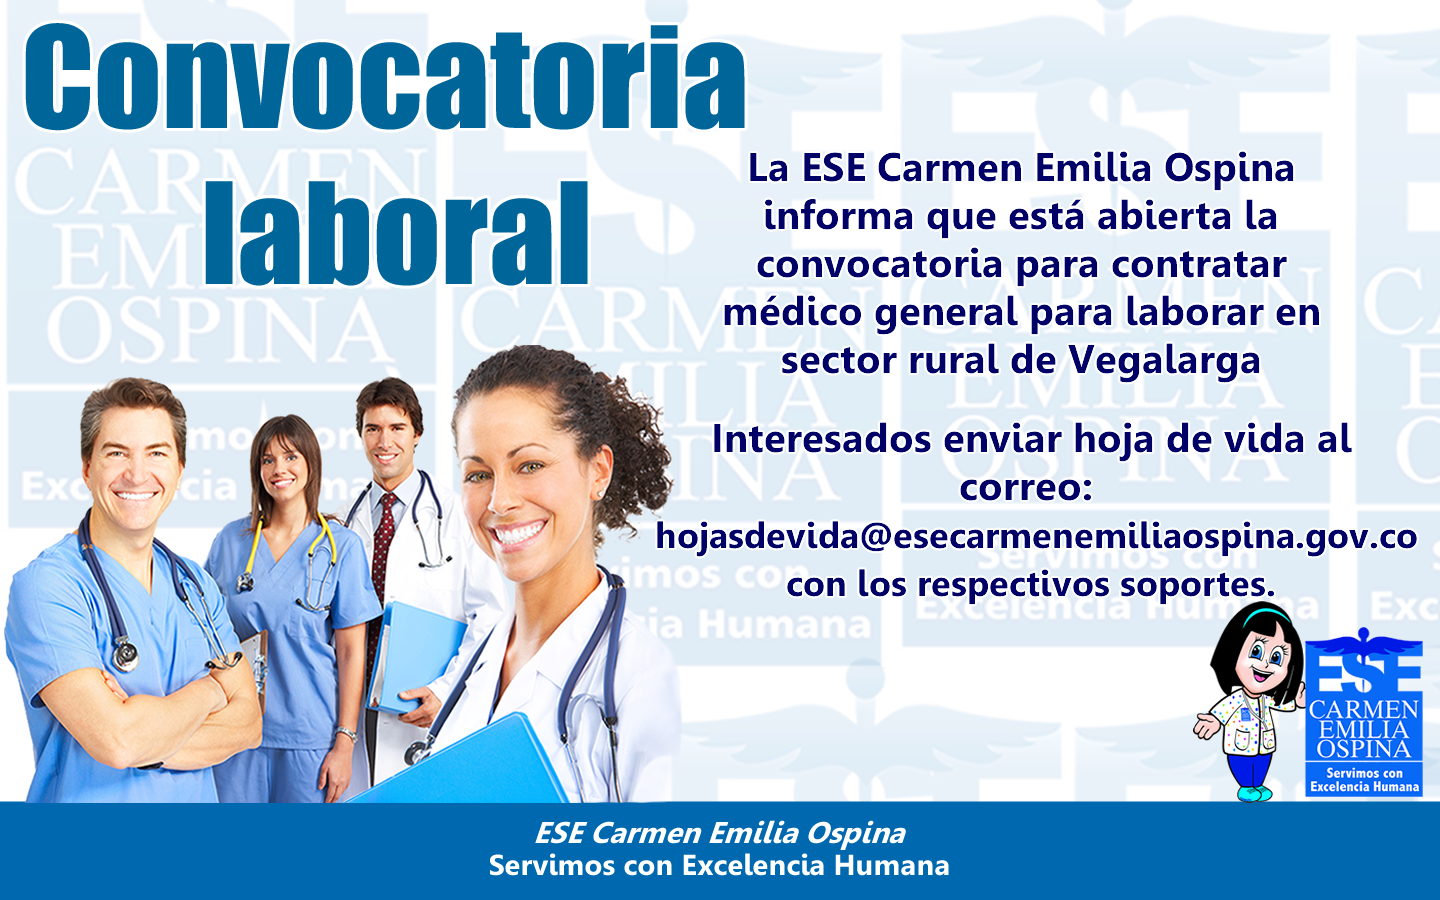 Convocatoria Laboral para contratar Médico General zona rural de Vegalarga